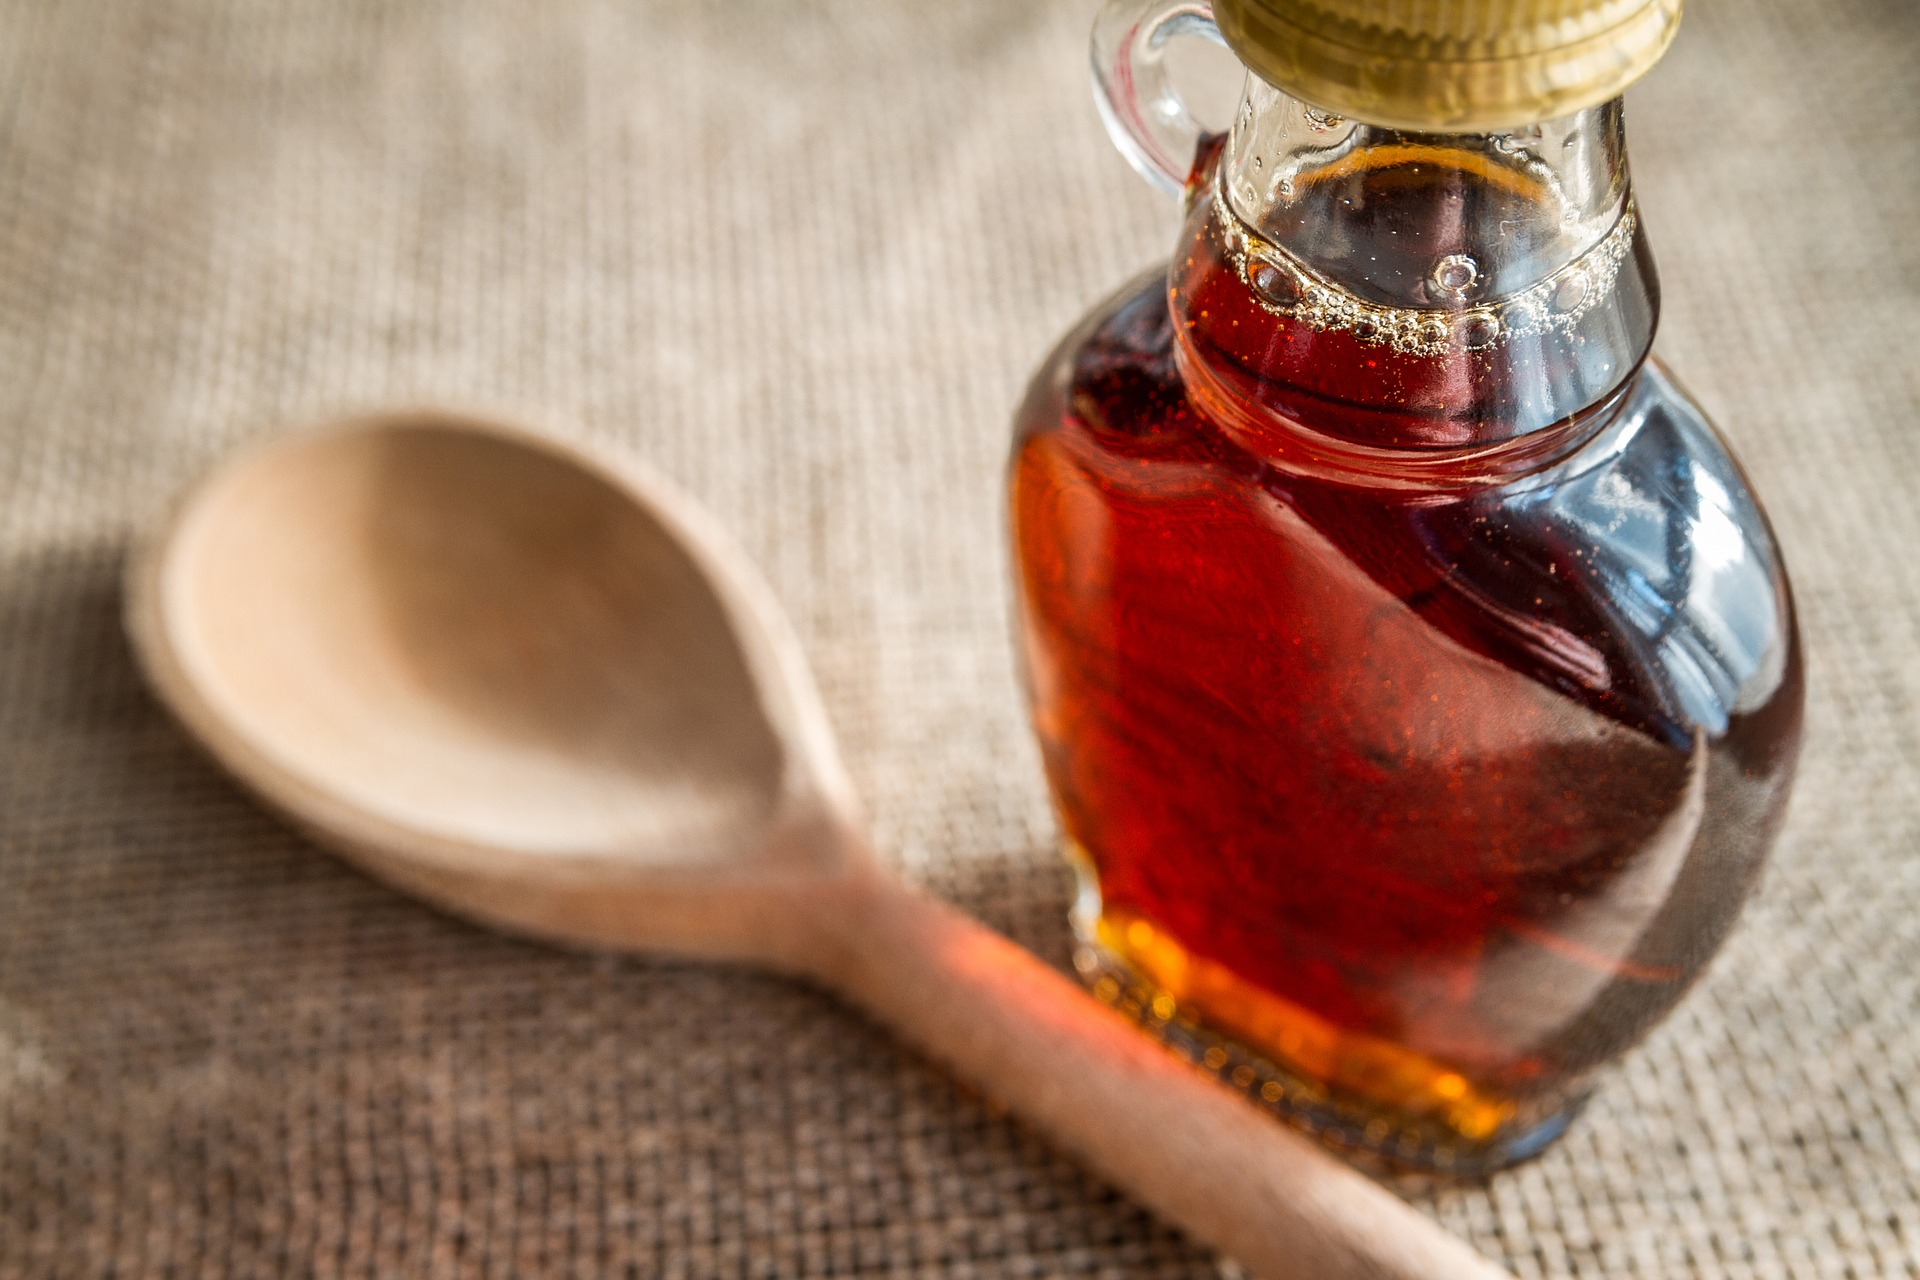 a bottle of maple syrup and a wooden spoon